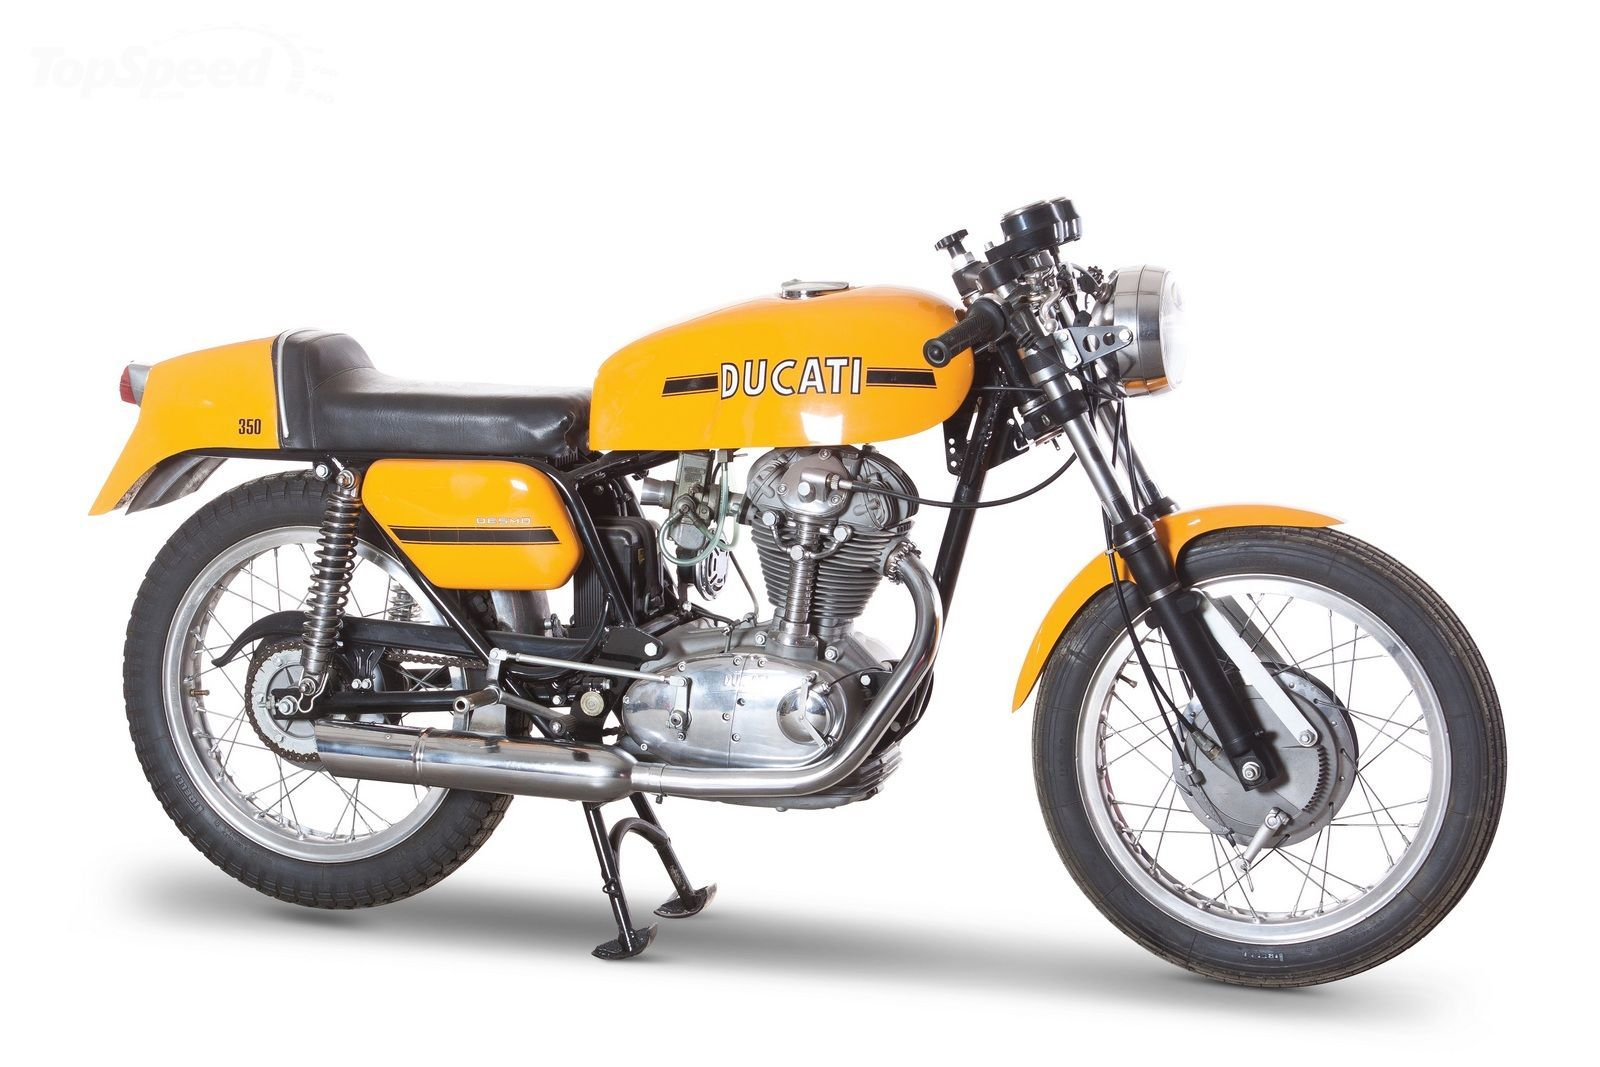 Ducati 450 Mark 3 1971 images #148093